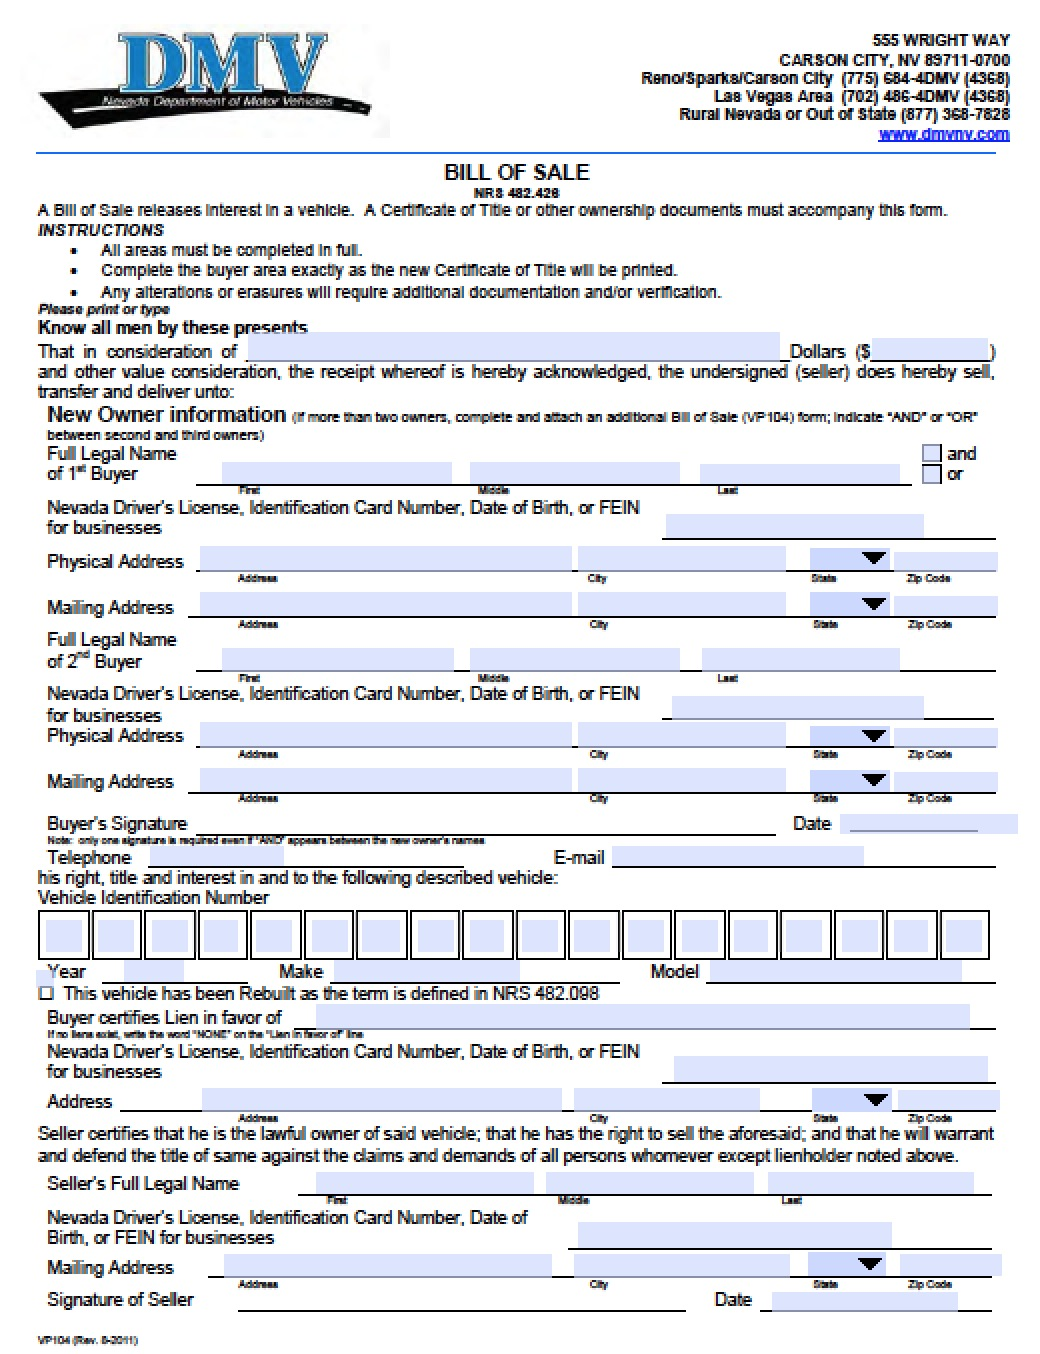 free nevada dmv vehicle bill of sale vp104 form pdf word doc